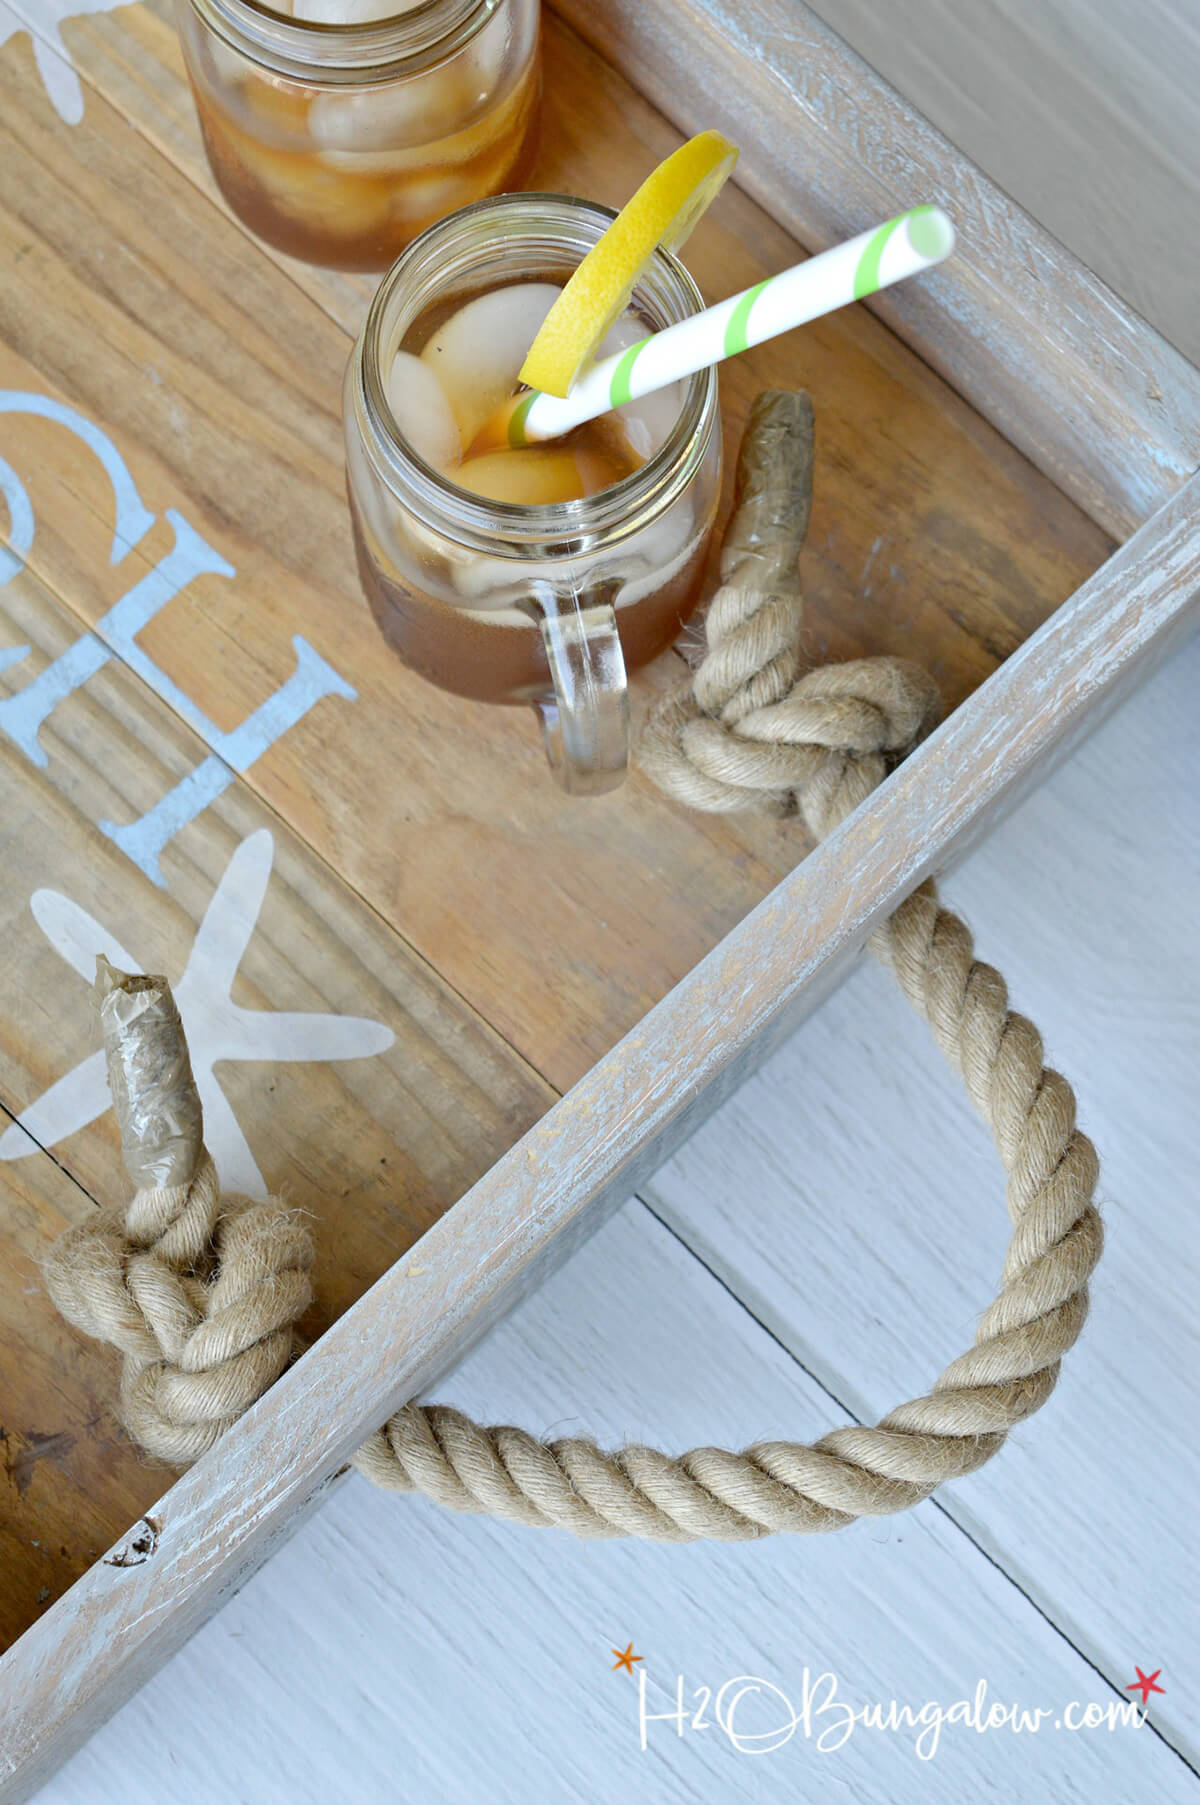 A Breakfast Tray with Rope Handles